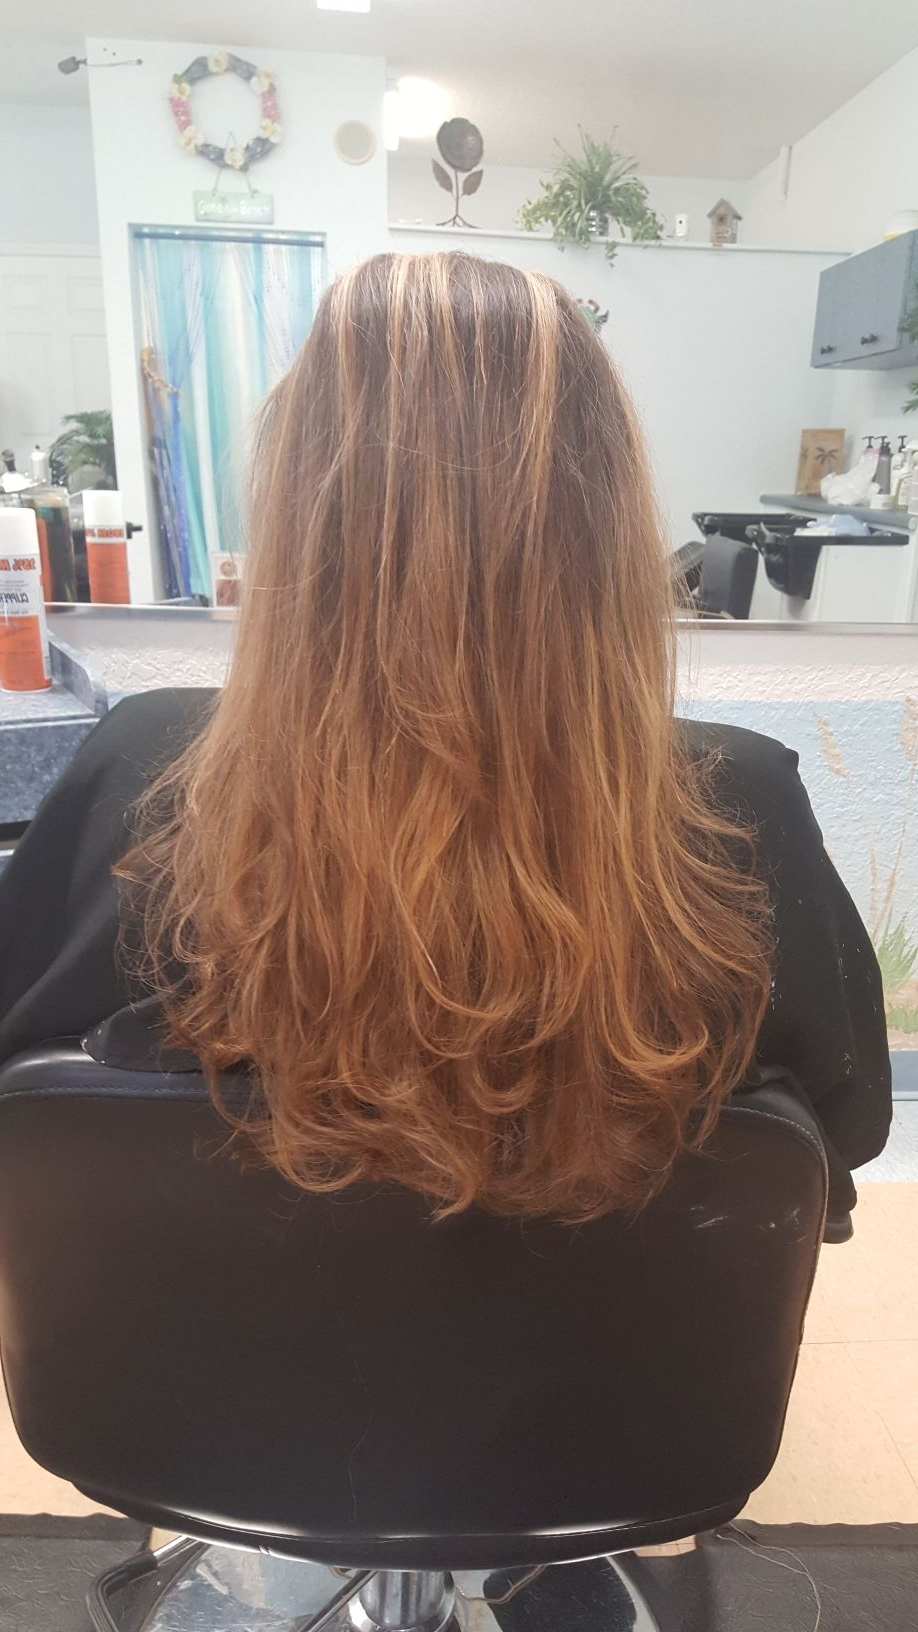 After Her Color And Haircut | Cuts And Color @tropical Waves In Waves Of Color Shag Haircuts (View 16 of 20)